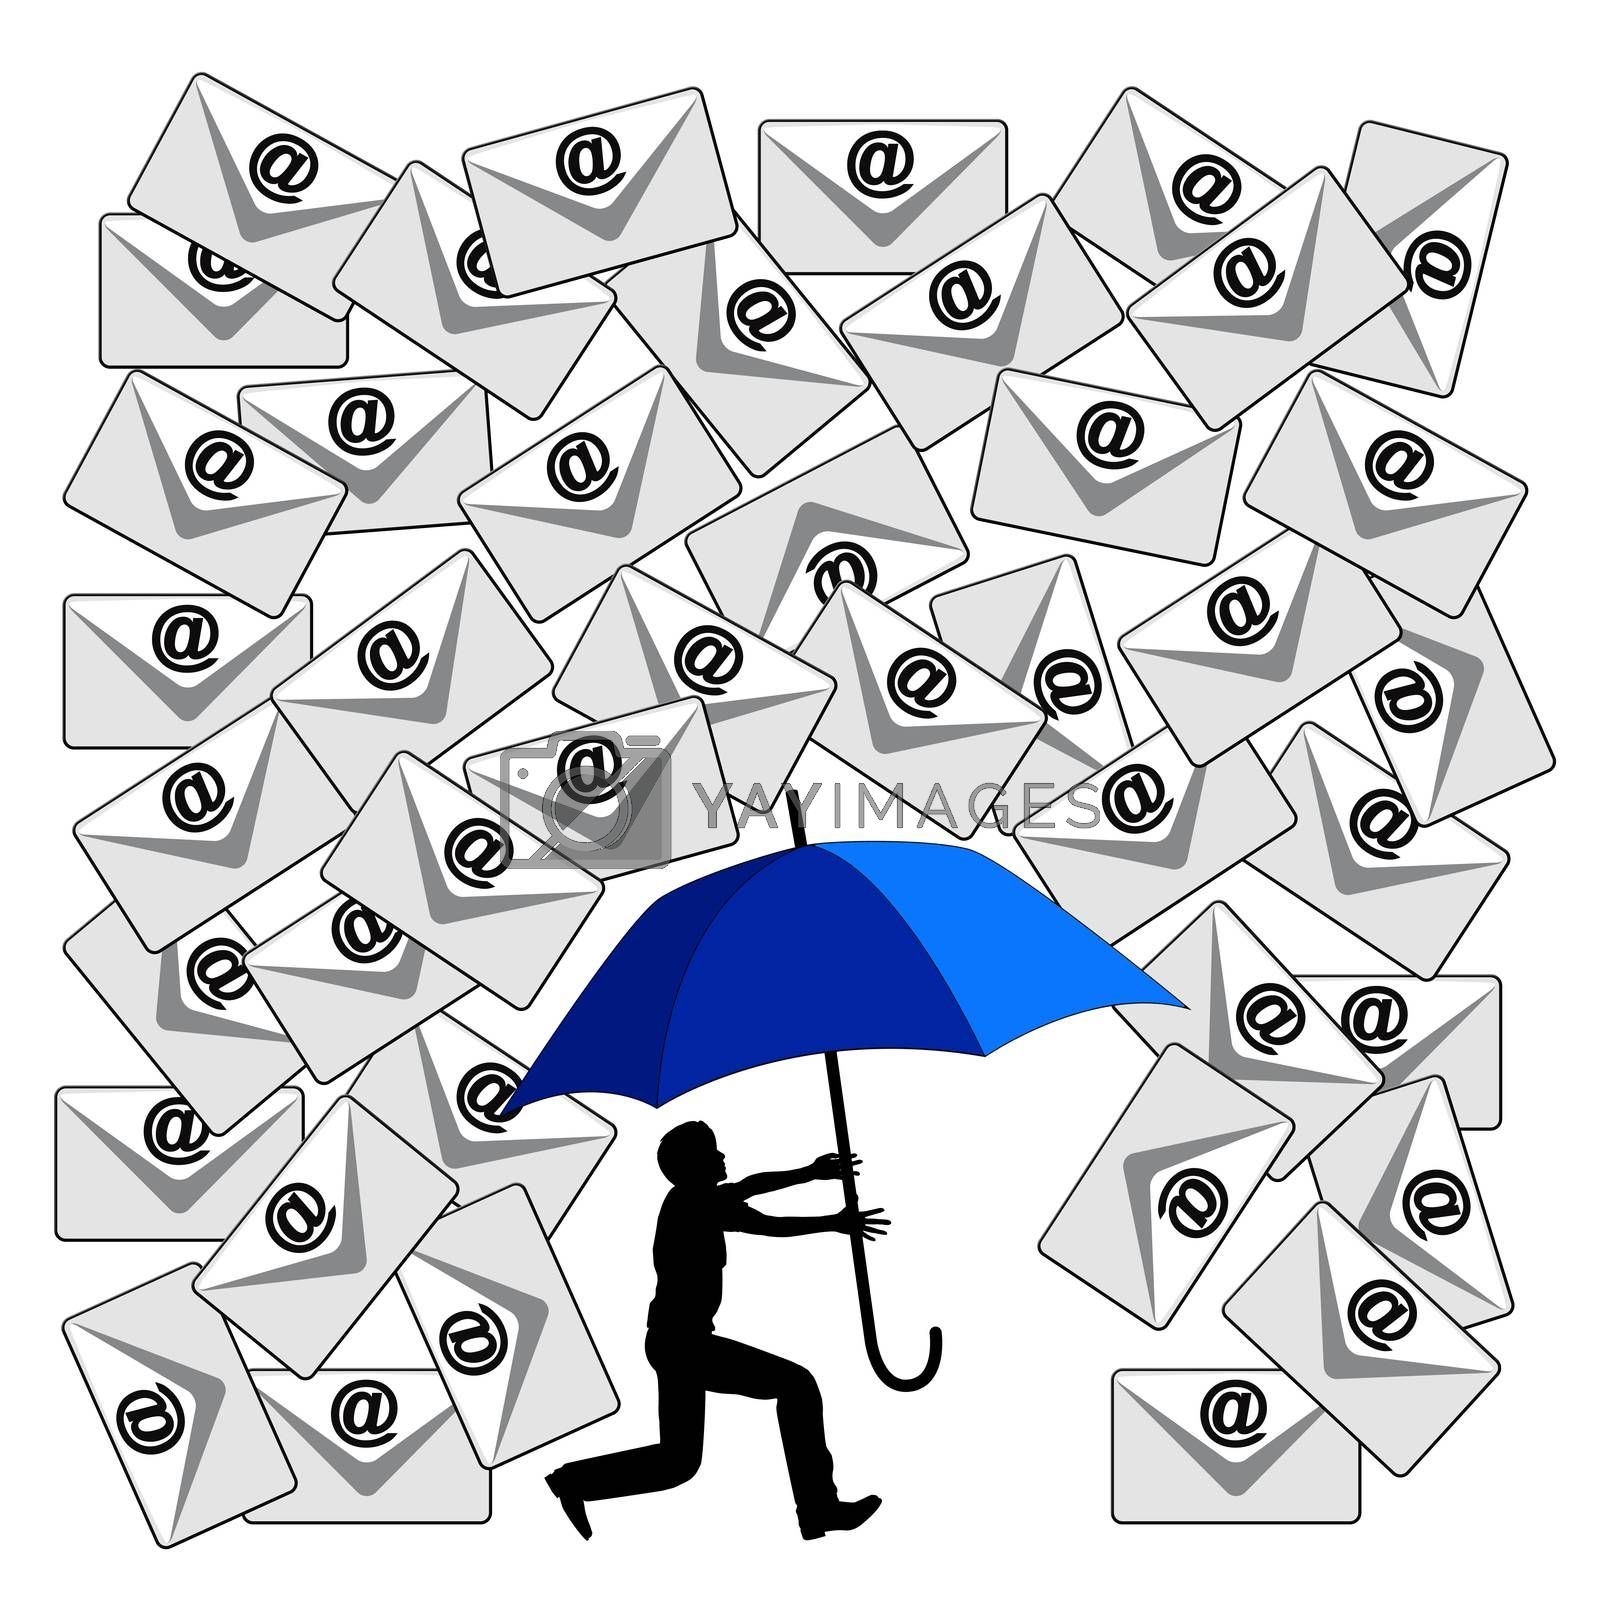 Humorous concept sign of the daily flood of e-mails at the workplace or in social media